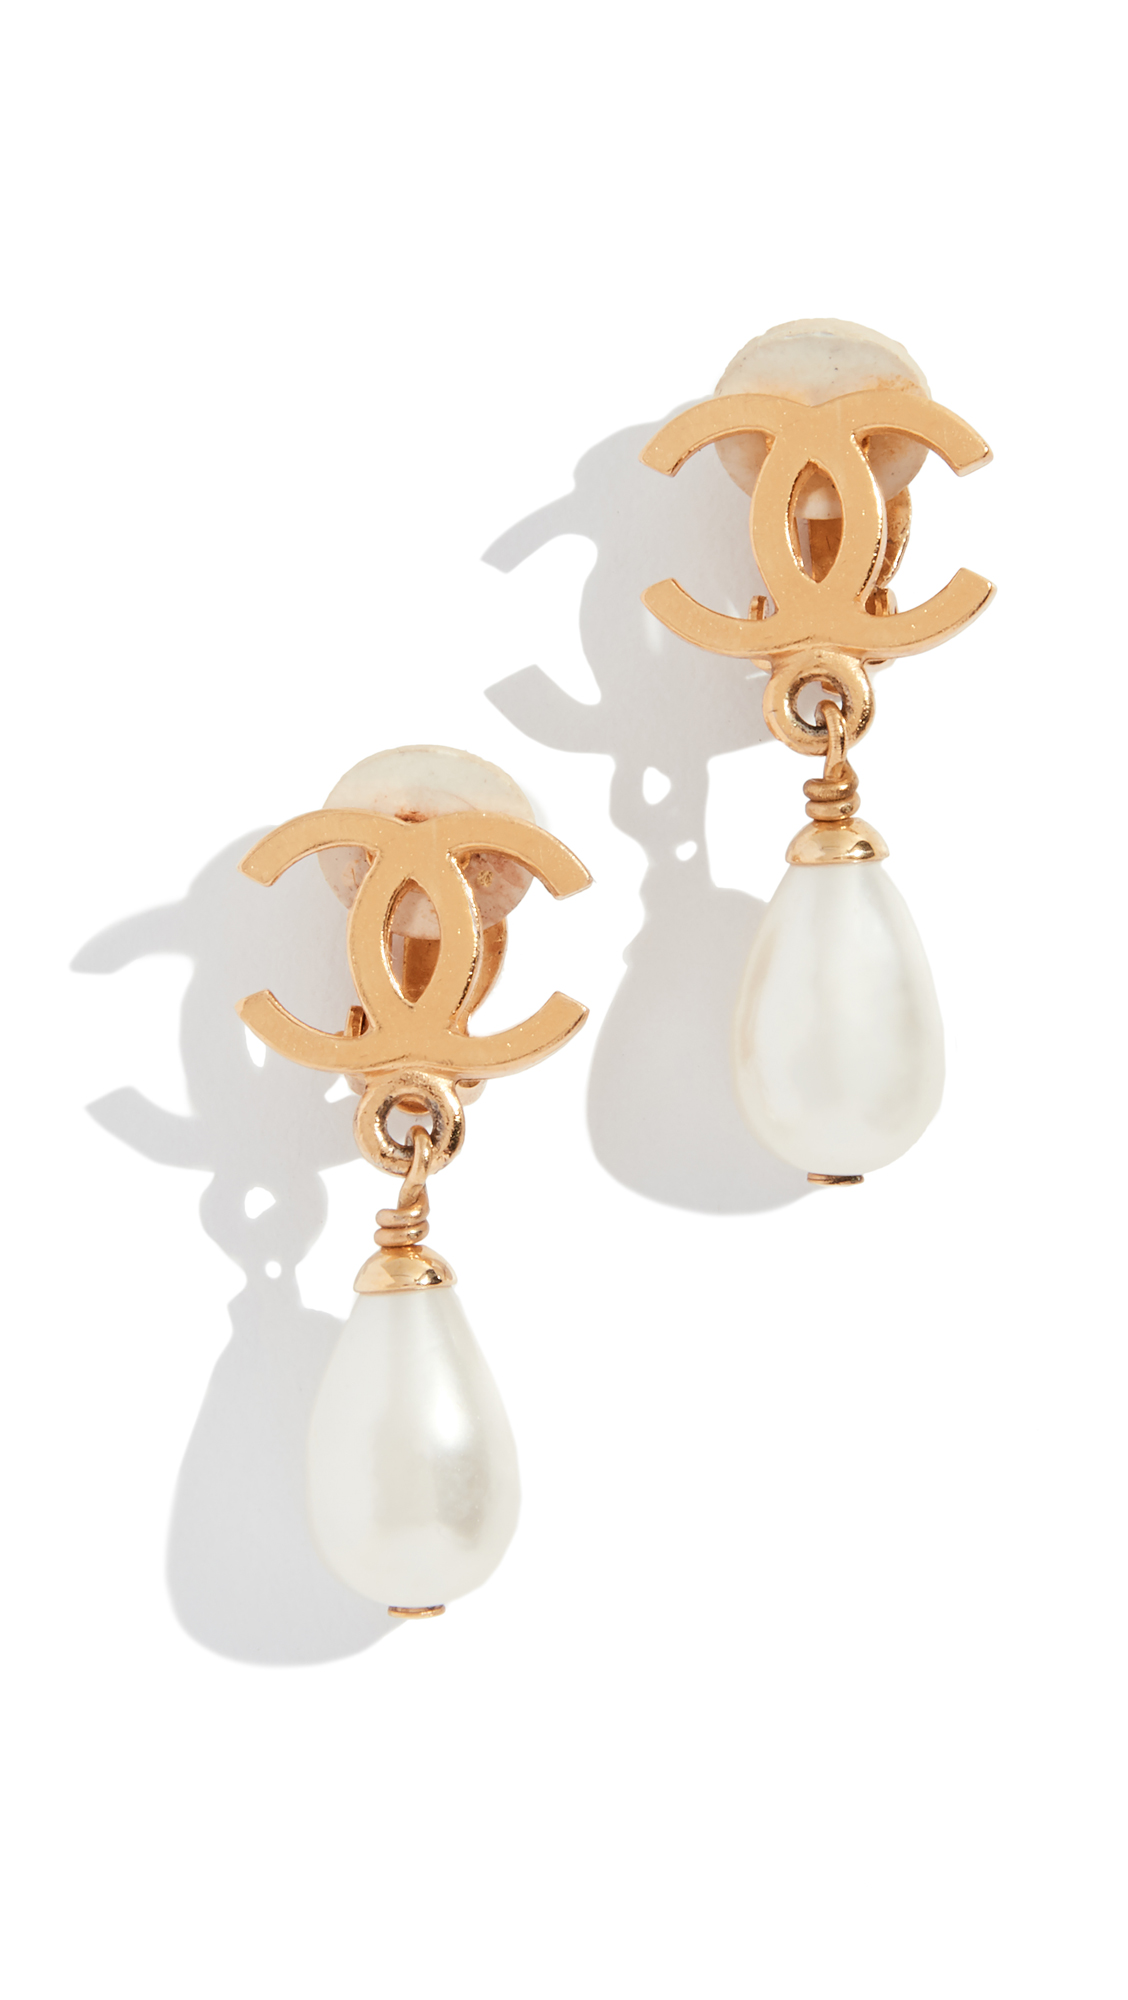 WHAT GOES AROUND COMES AROUND Chanel Dangle Clip On Earrings in Gold